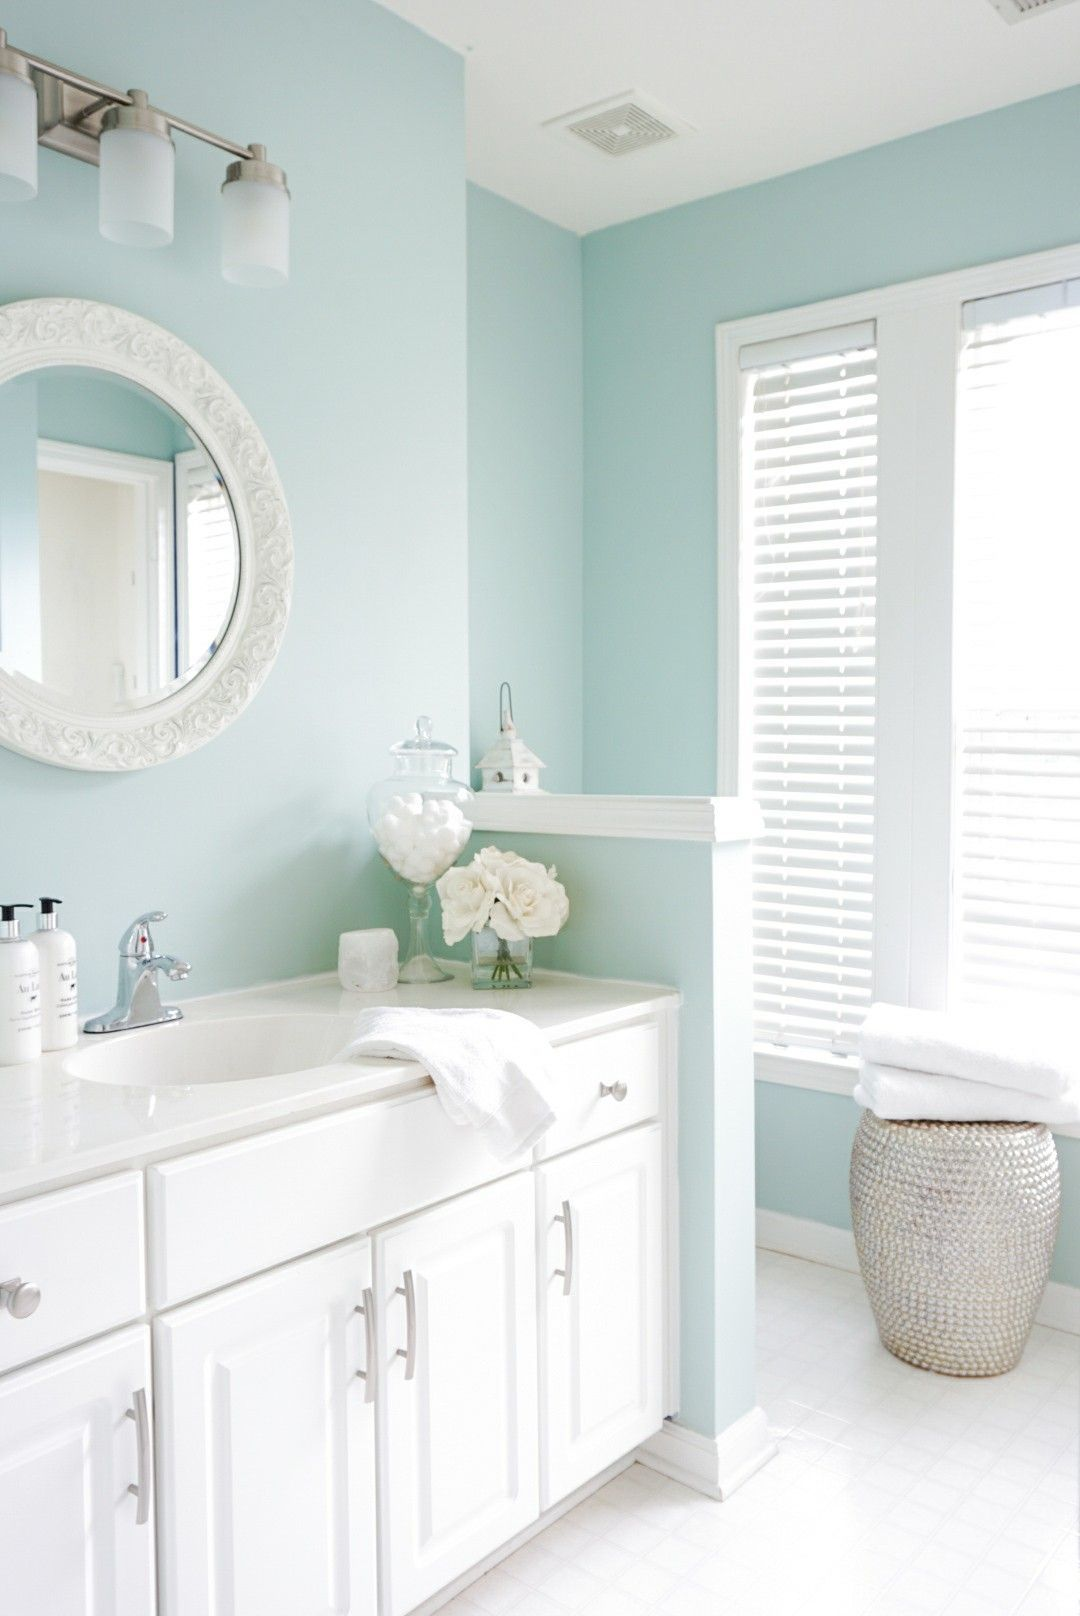 bathroom color ideas best paint and color schemes for on current popular interior paint colors id=68179